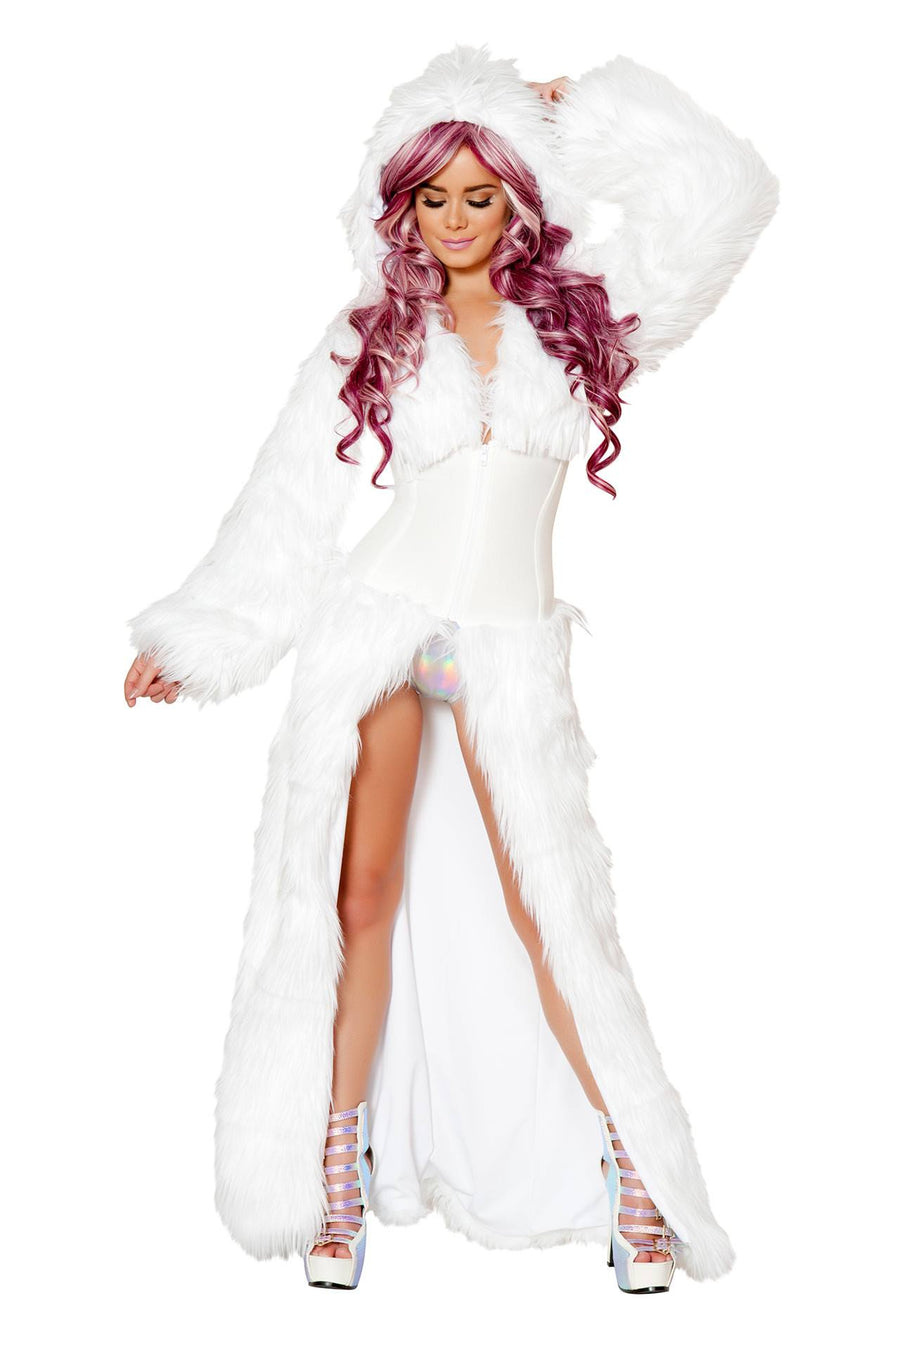 Light-Up White Shag Cincher Coat - Rave Clothing, J Valentine, YourLamode